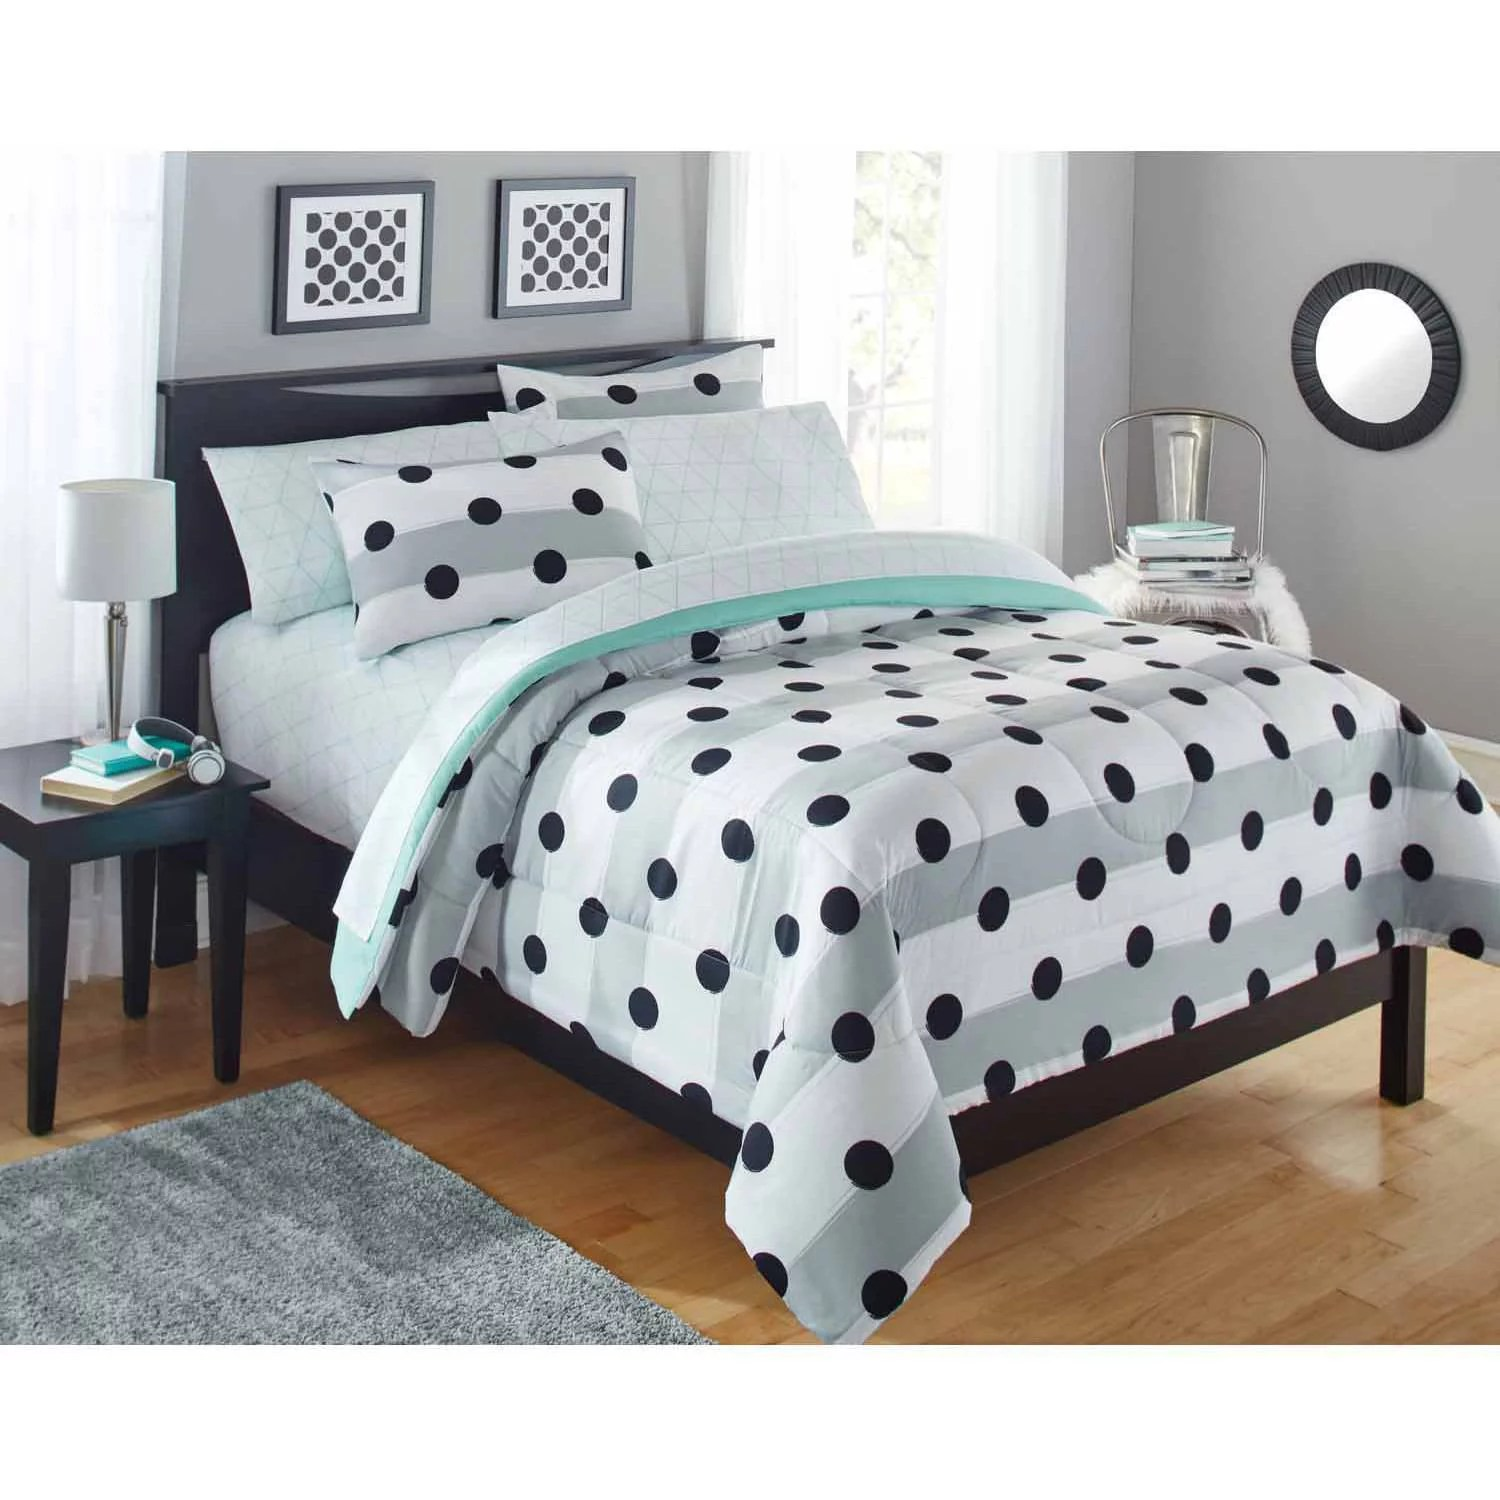 Your Zone Grey Stripe Dot Bed in a Bag Bedding Comforter Set     Your Zone Grey Stripe Dot Bed in a Bag Bedding Comforter Set   Walmart com